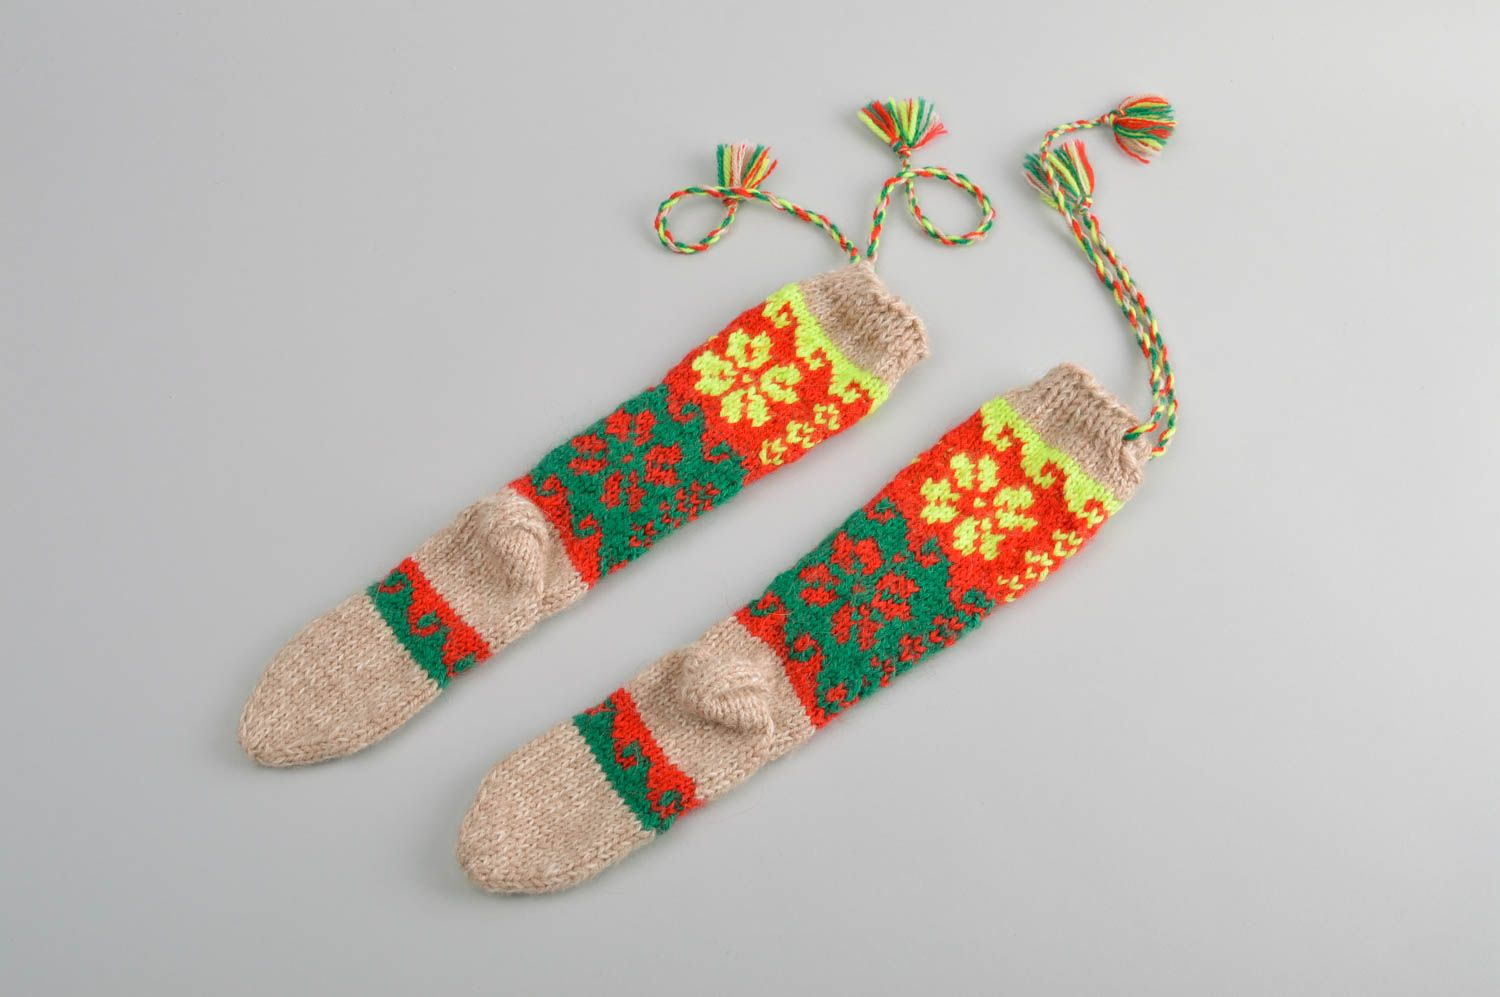 Colorful handmade wool socks warm knitted socks winter accessories for kids - MADEheart.com